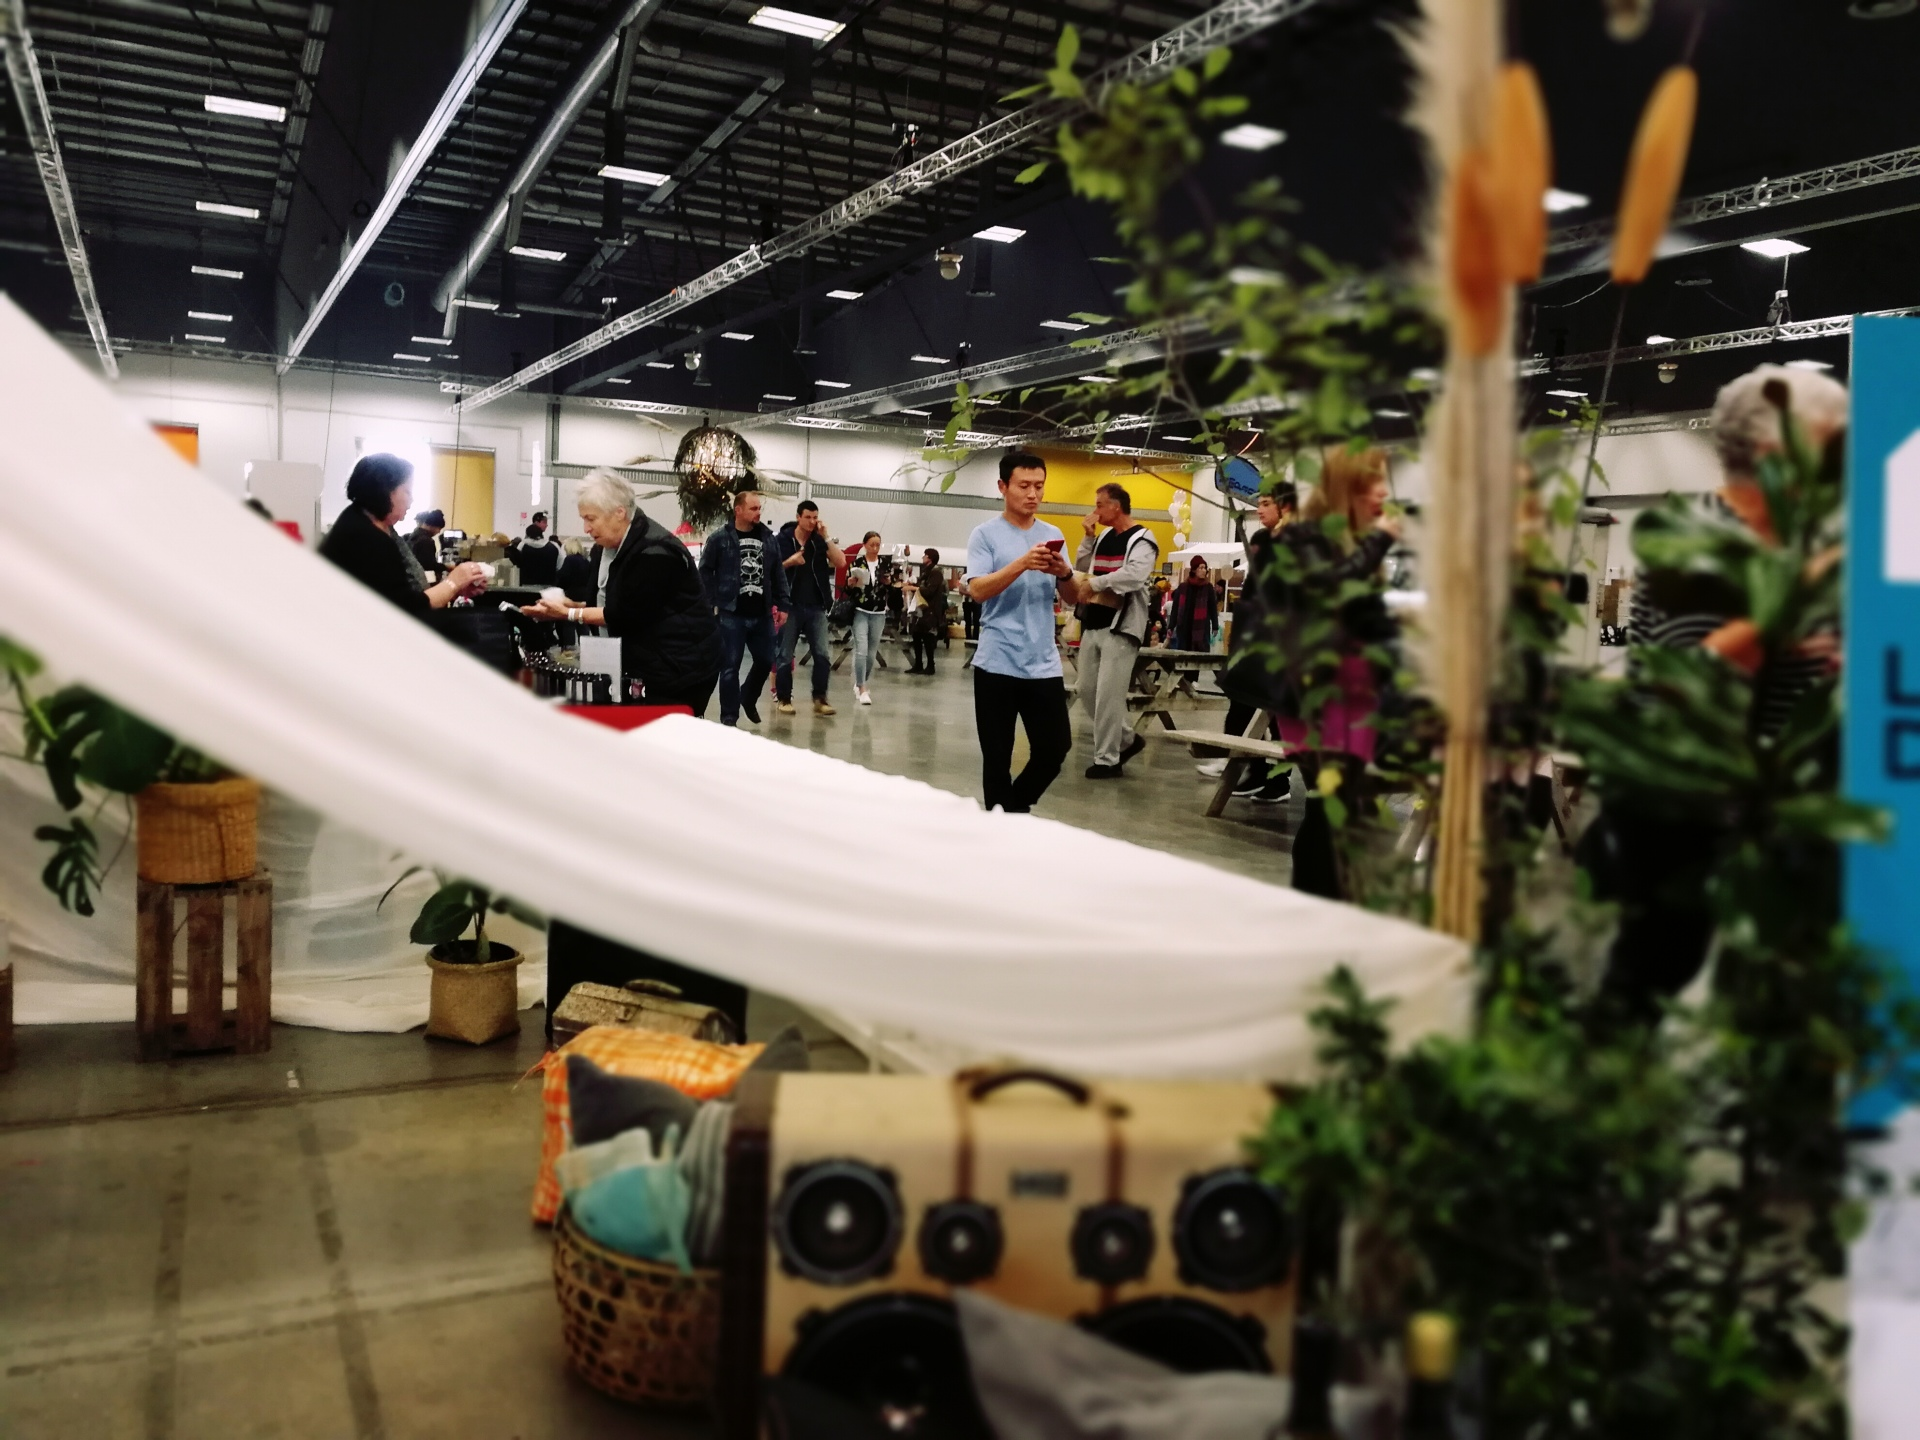 Photos from the recent General Collective Lifestyle & Design Market